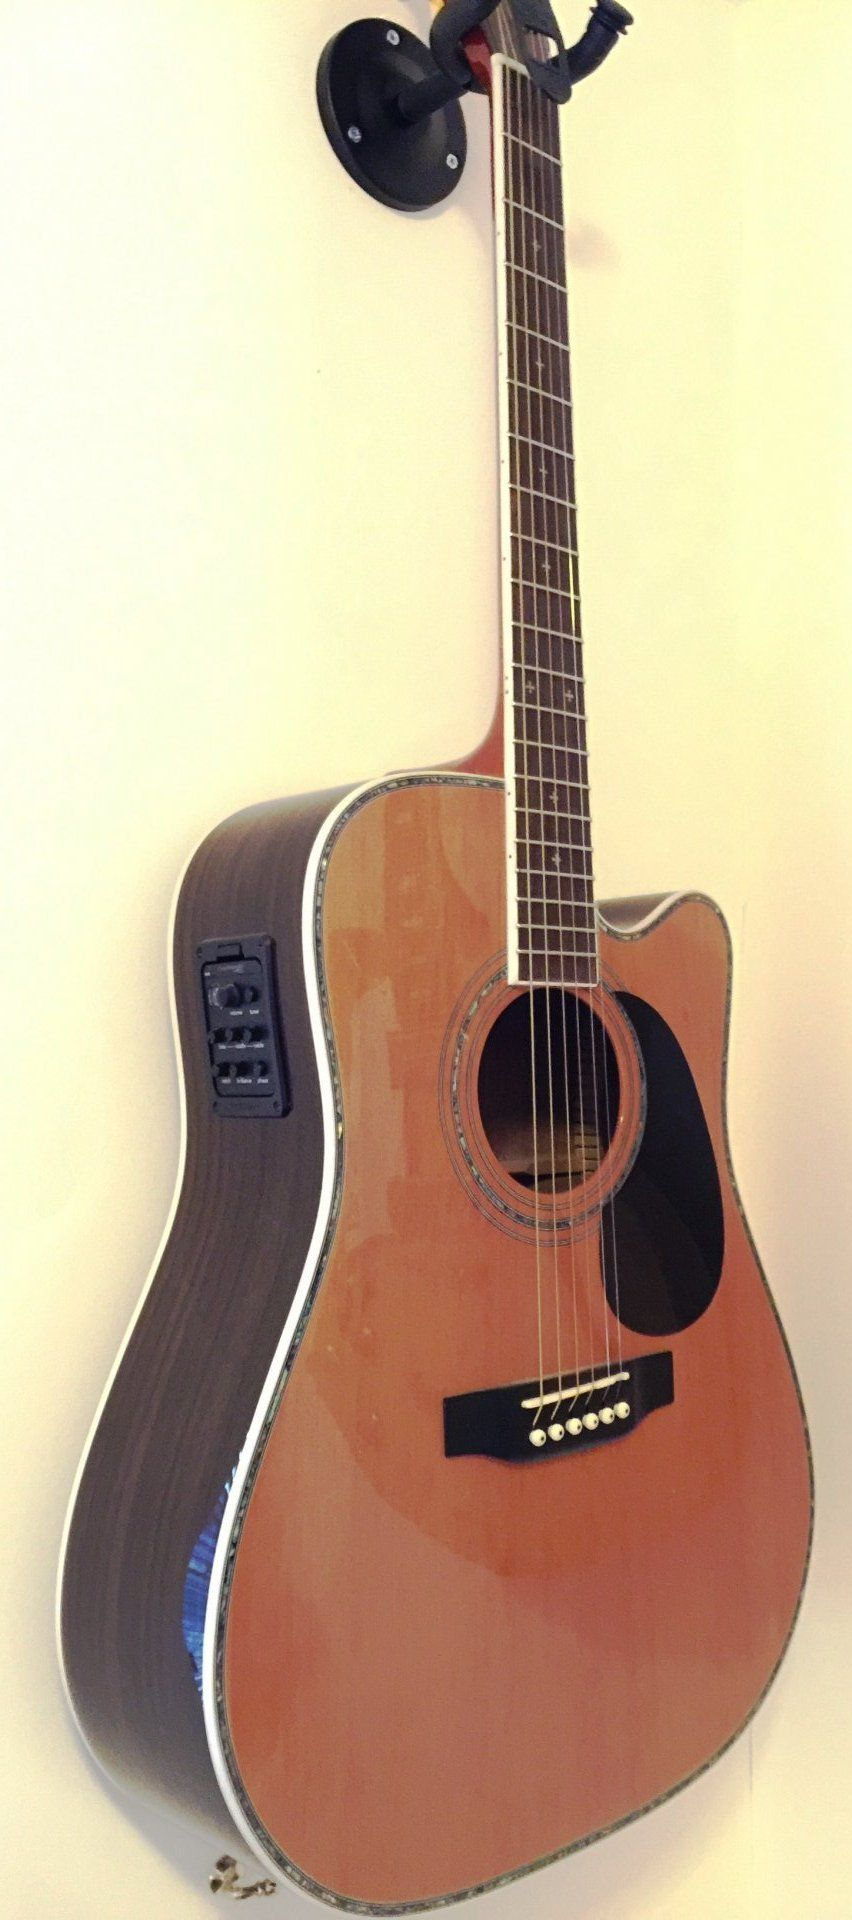 Zager Zad 80ce N Electro Acoustic Acoustic Acoustic Instrument Guitar